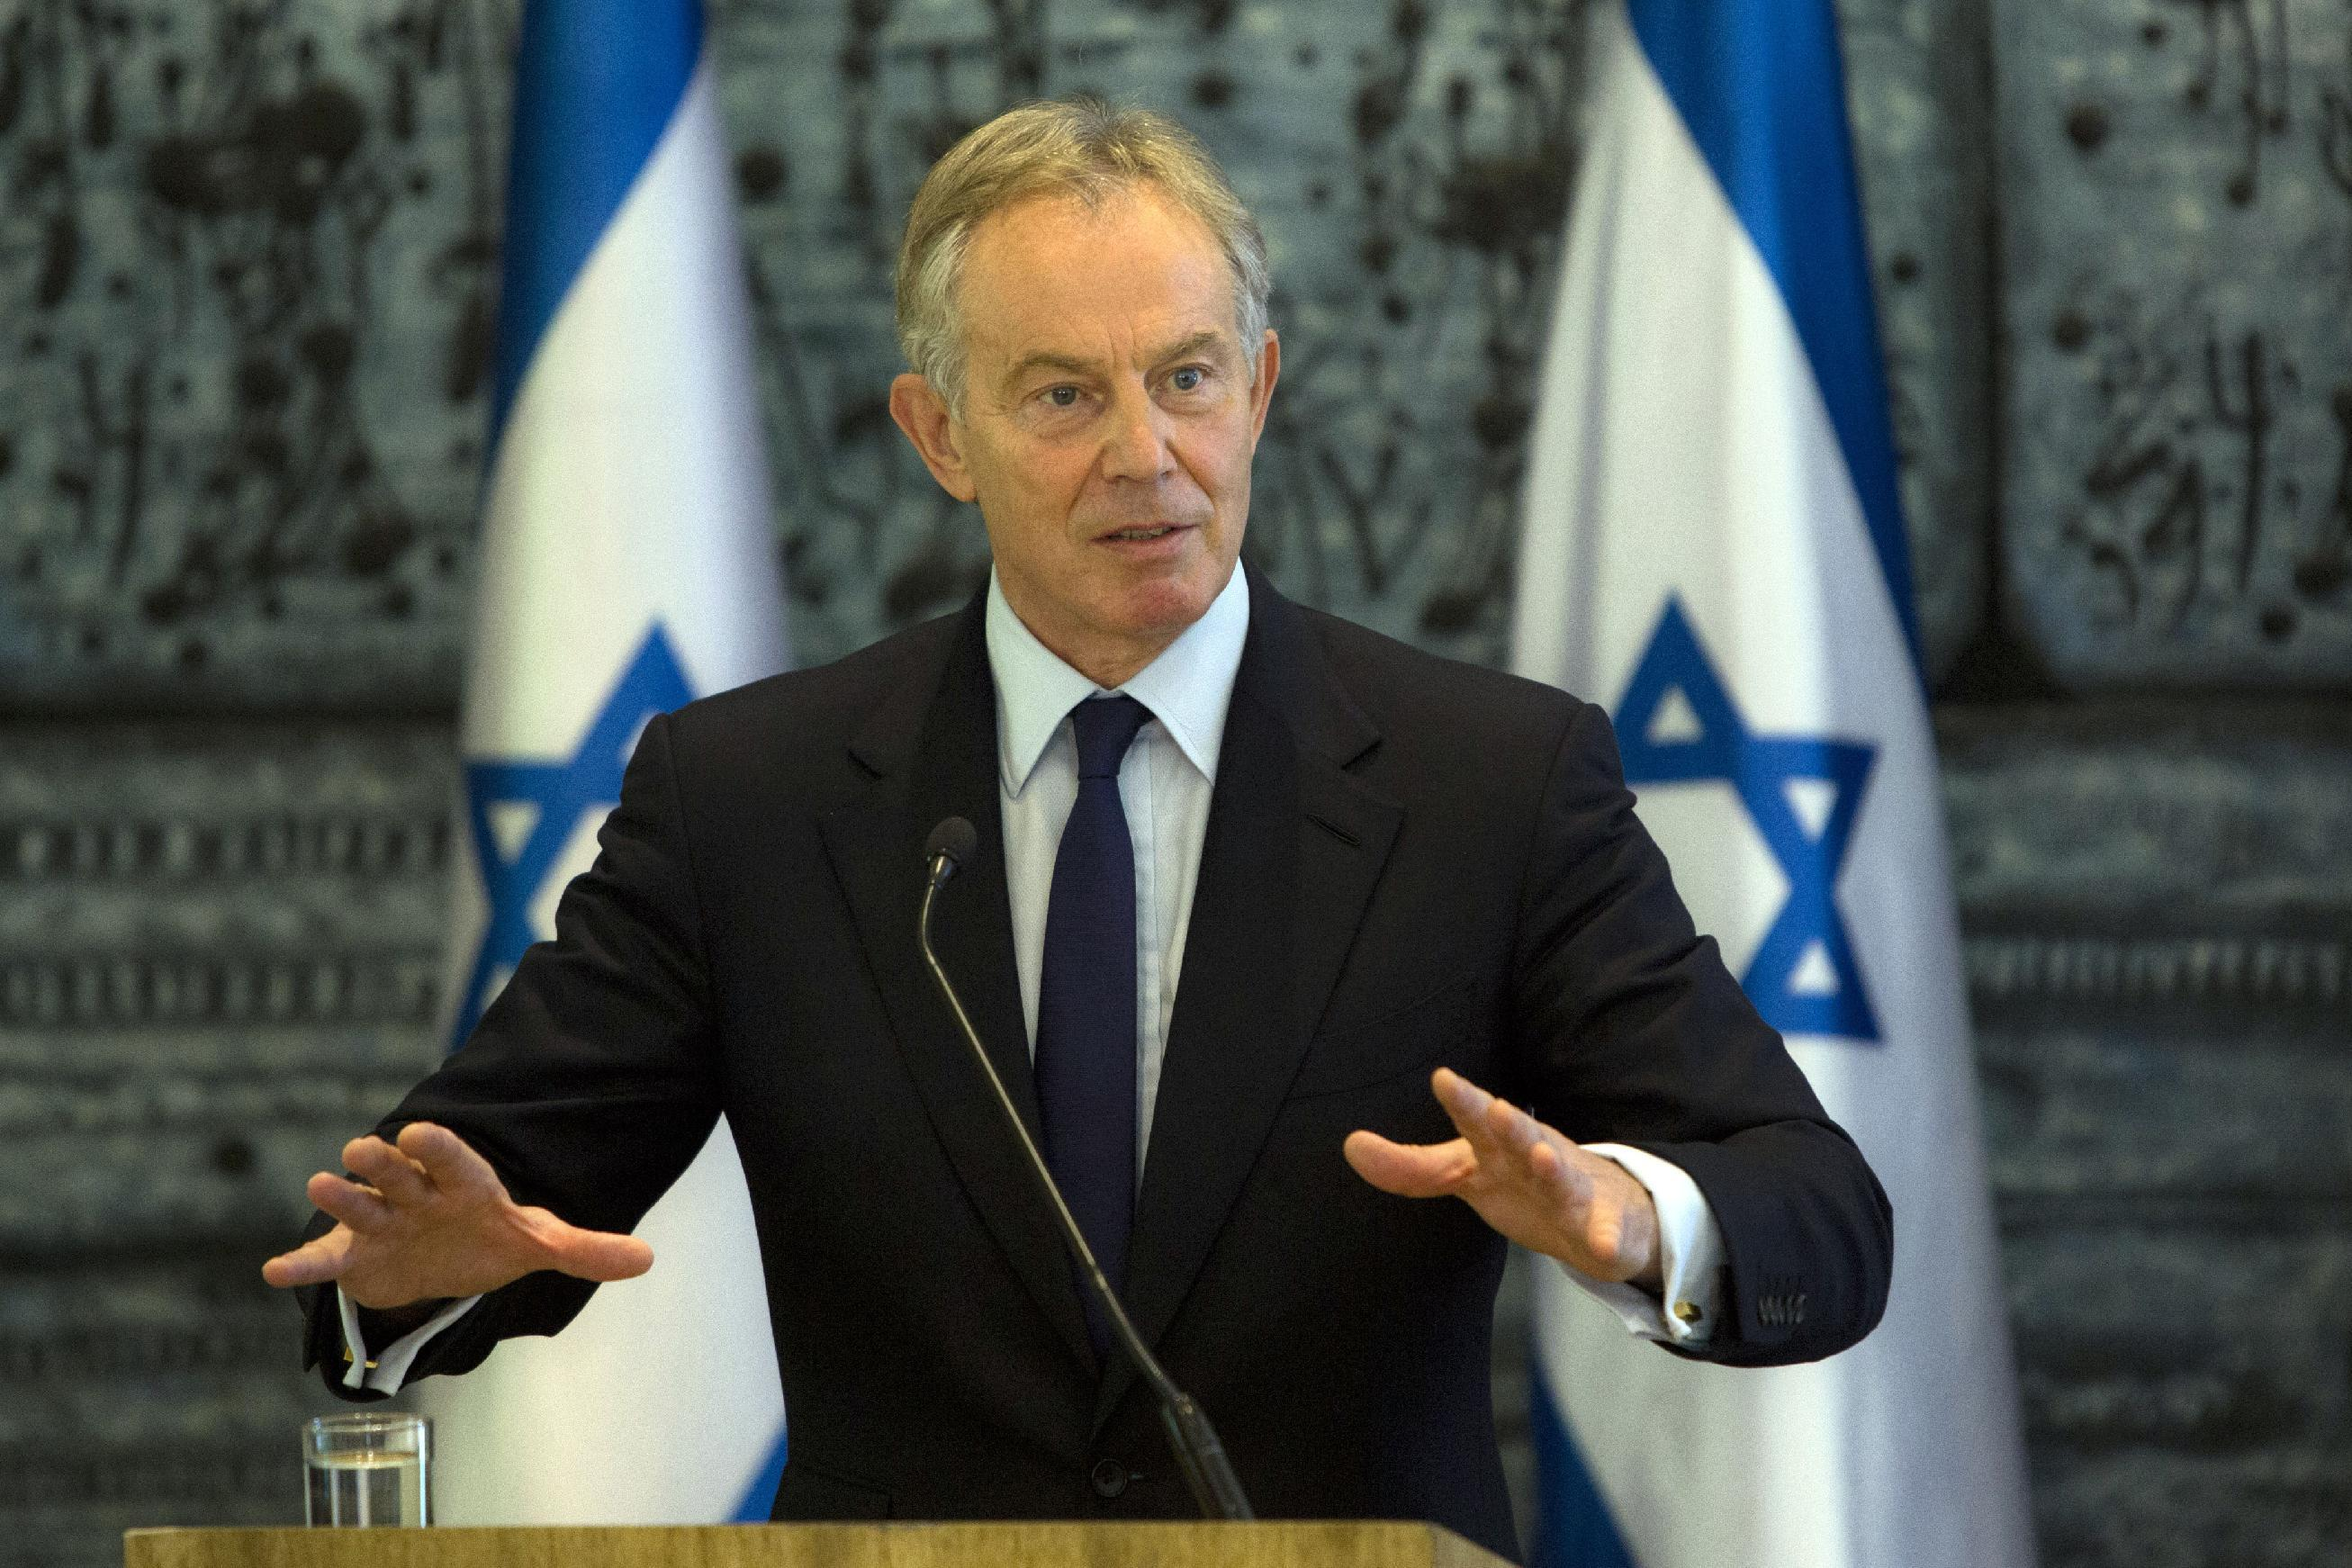 APNewsBreak: Quartet Mideast envoy Tony Blair resigns